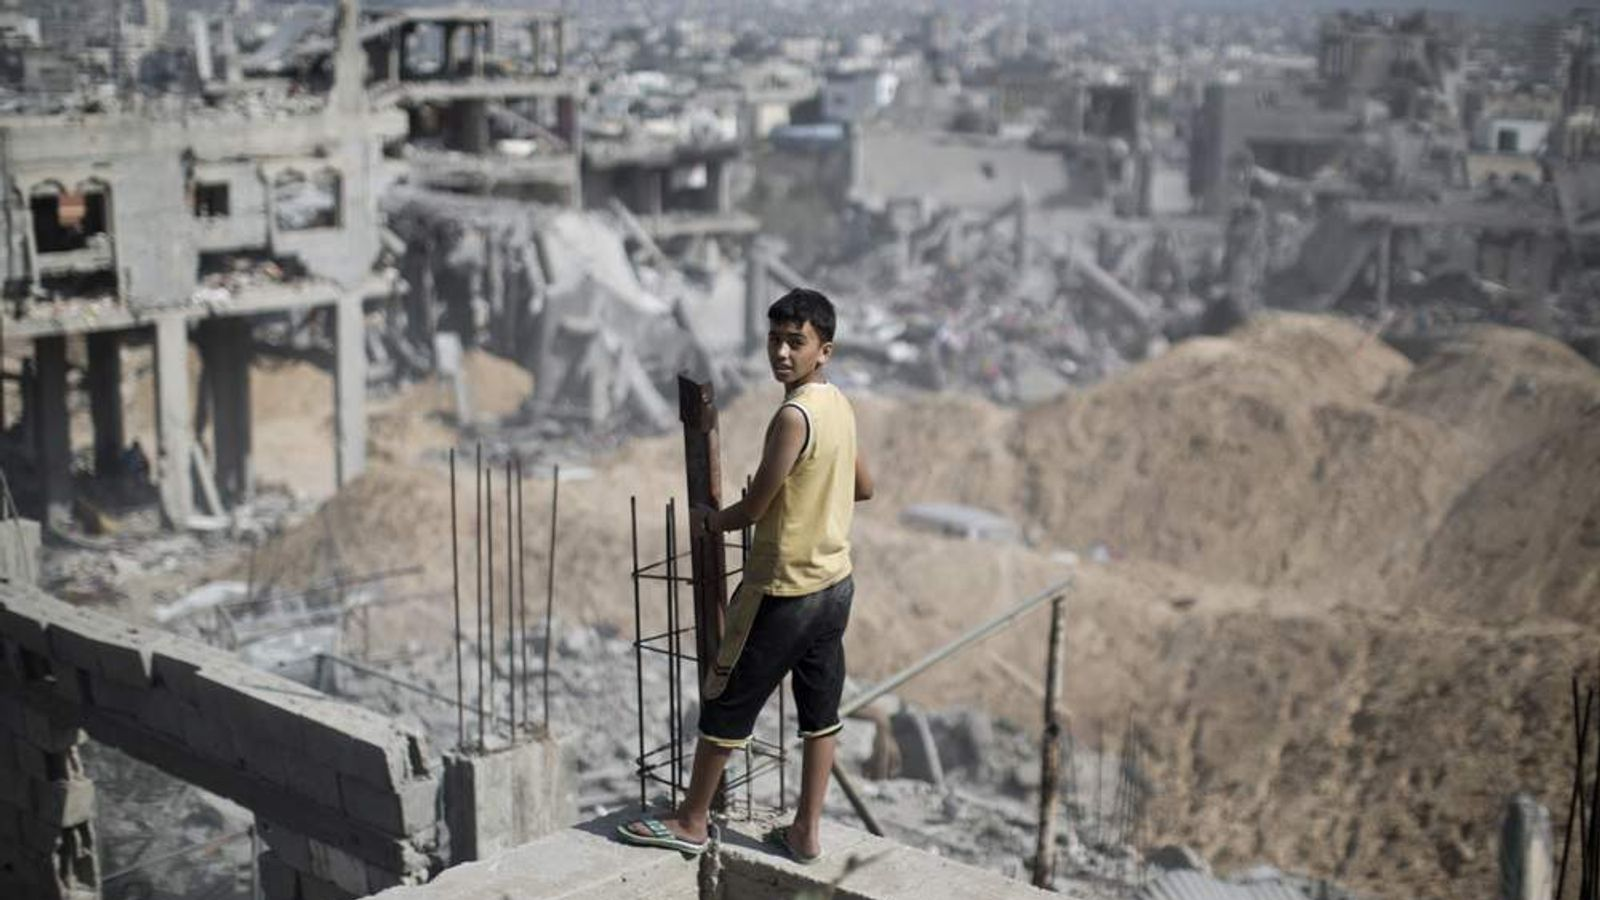 A Palestinian youth looks out at the destruction in part of Gaza City's al-Tufah neighbourhood